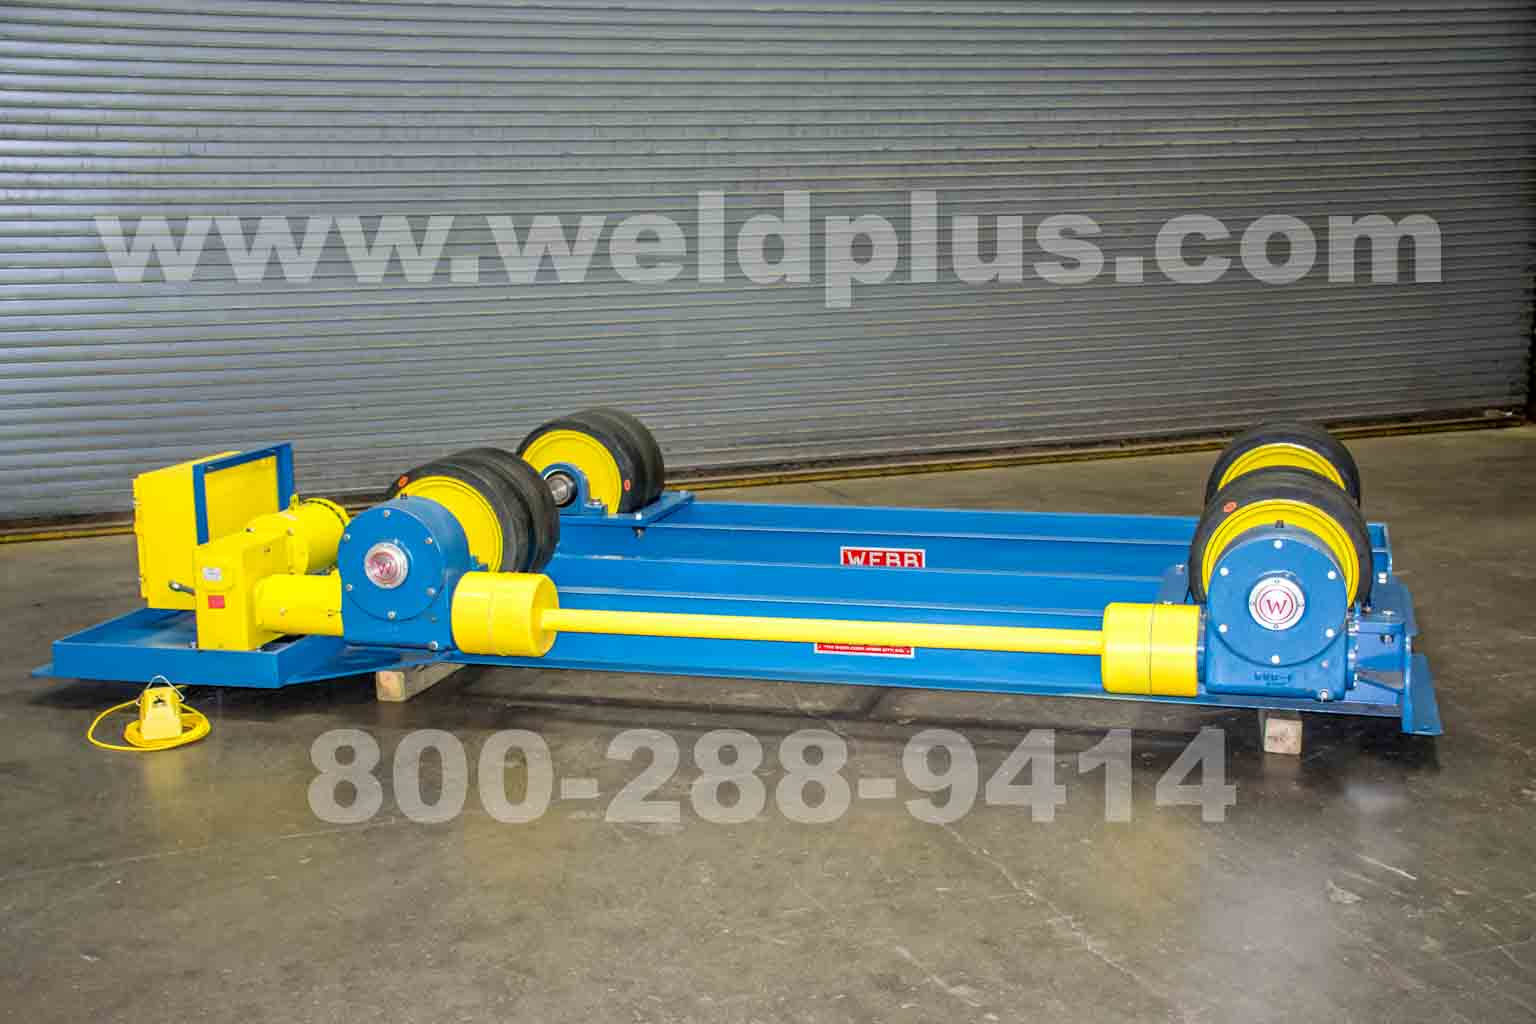 R-1000 40 Ton Webb Turning Rolls